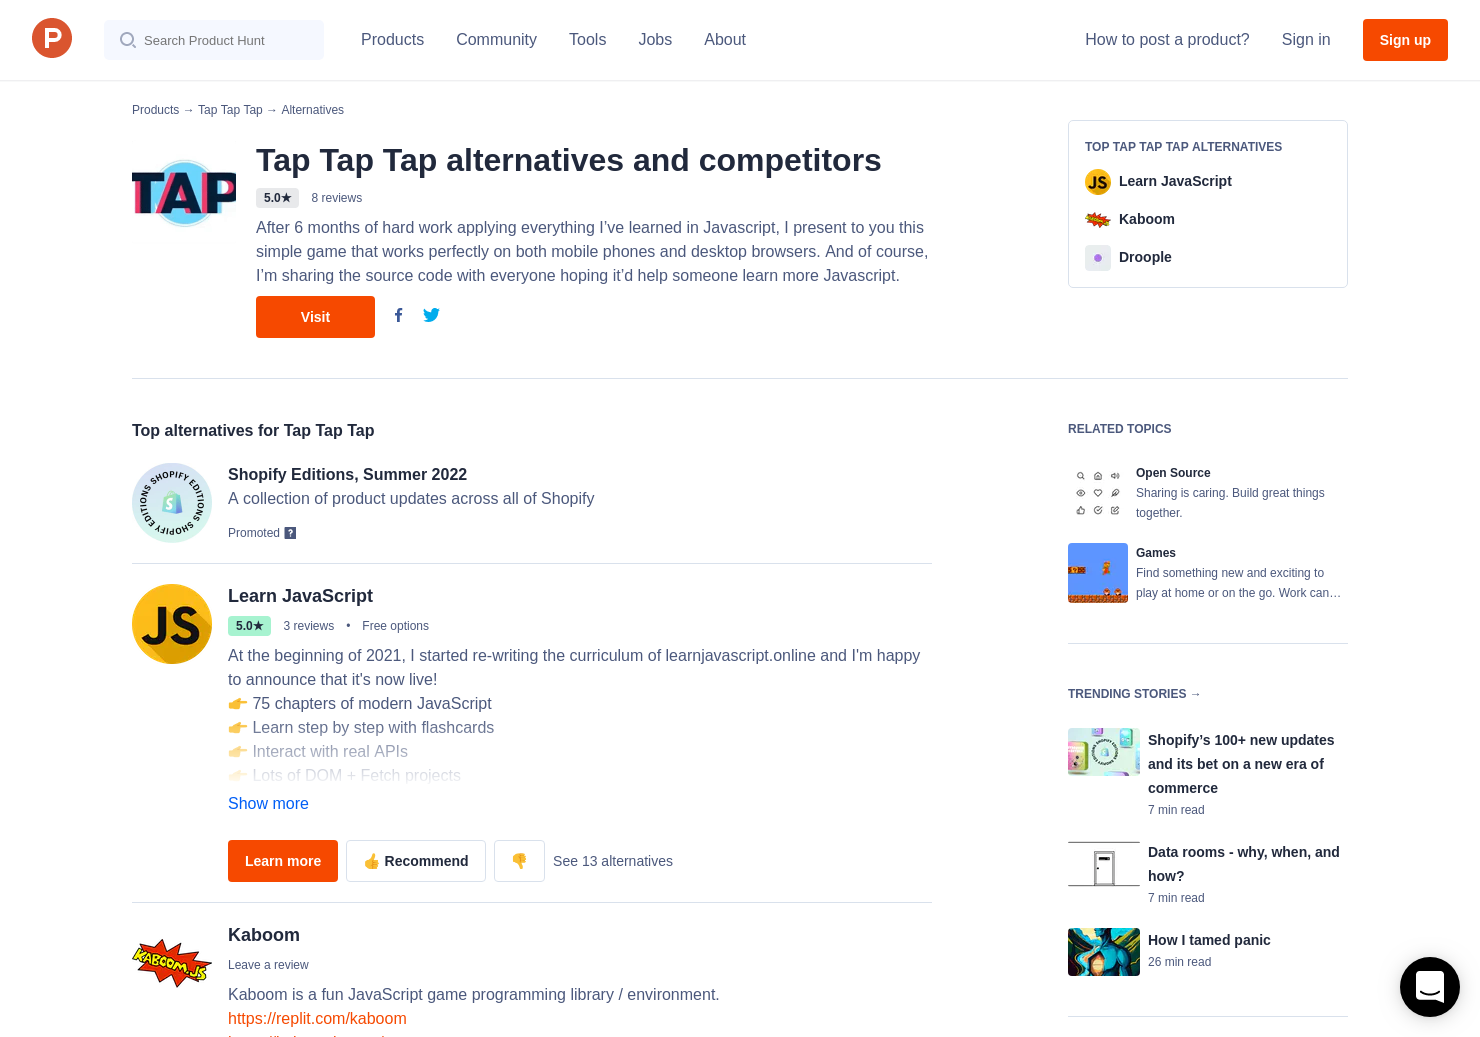 3 Alternatives to Tap Tap Tap | Product Hunt